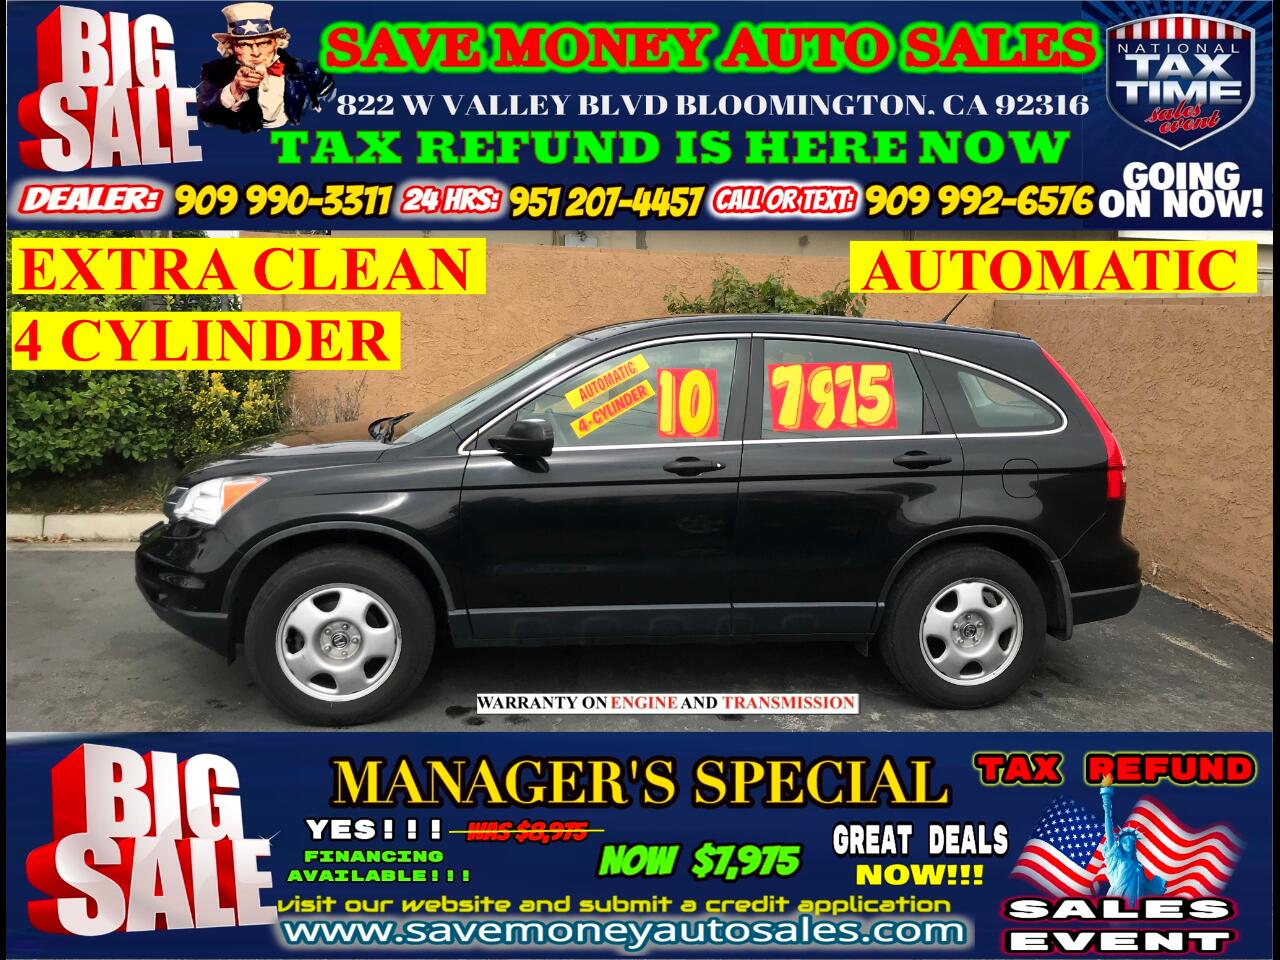 2010 Honda CR-V 4 CYLINDER> EXTRA CLEAN> AUTOMATIC